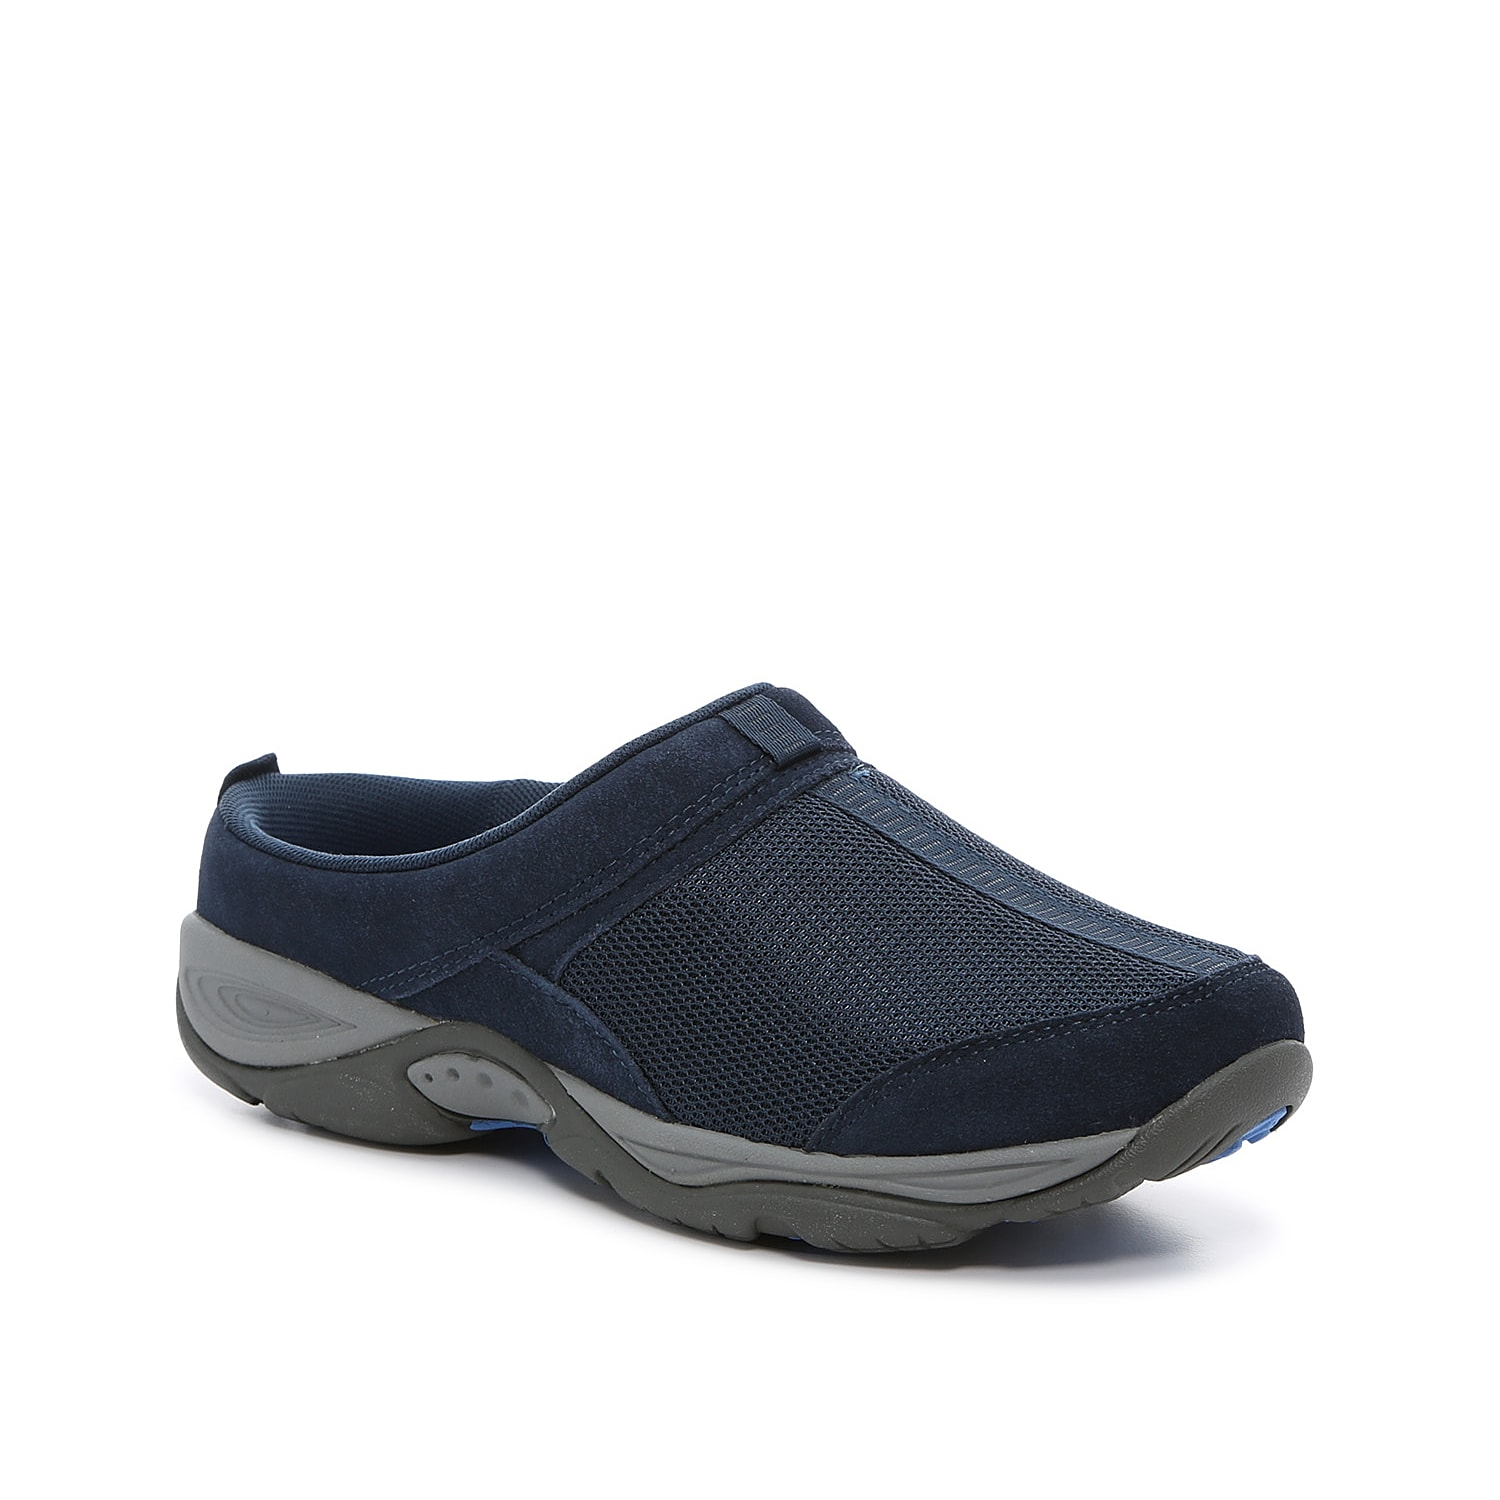 Complete your casual shoe collection with the Cool clog from Easy Spirit. This slip-on features a removable cushioned insole and an EVA midsole to promote flexibility and comfort in each step you take!